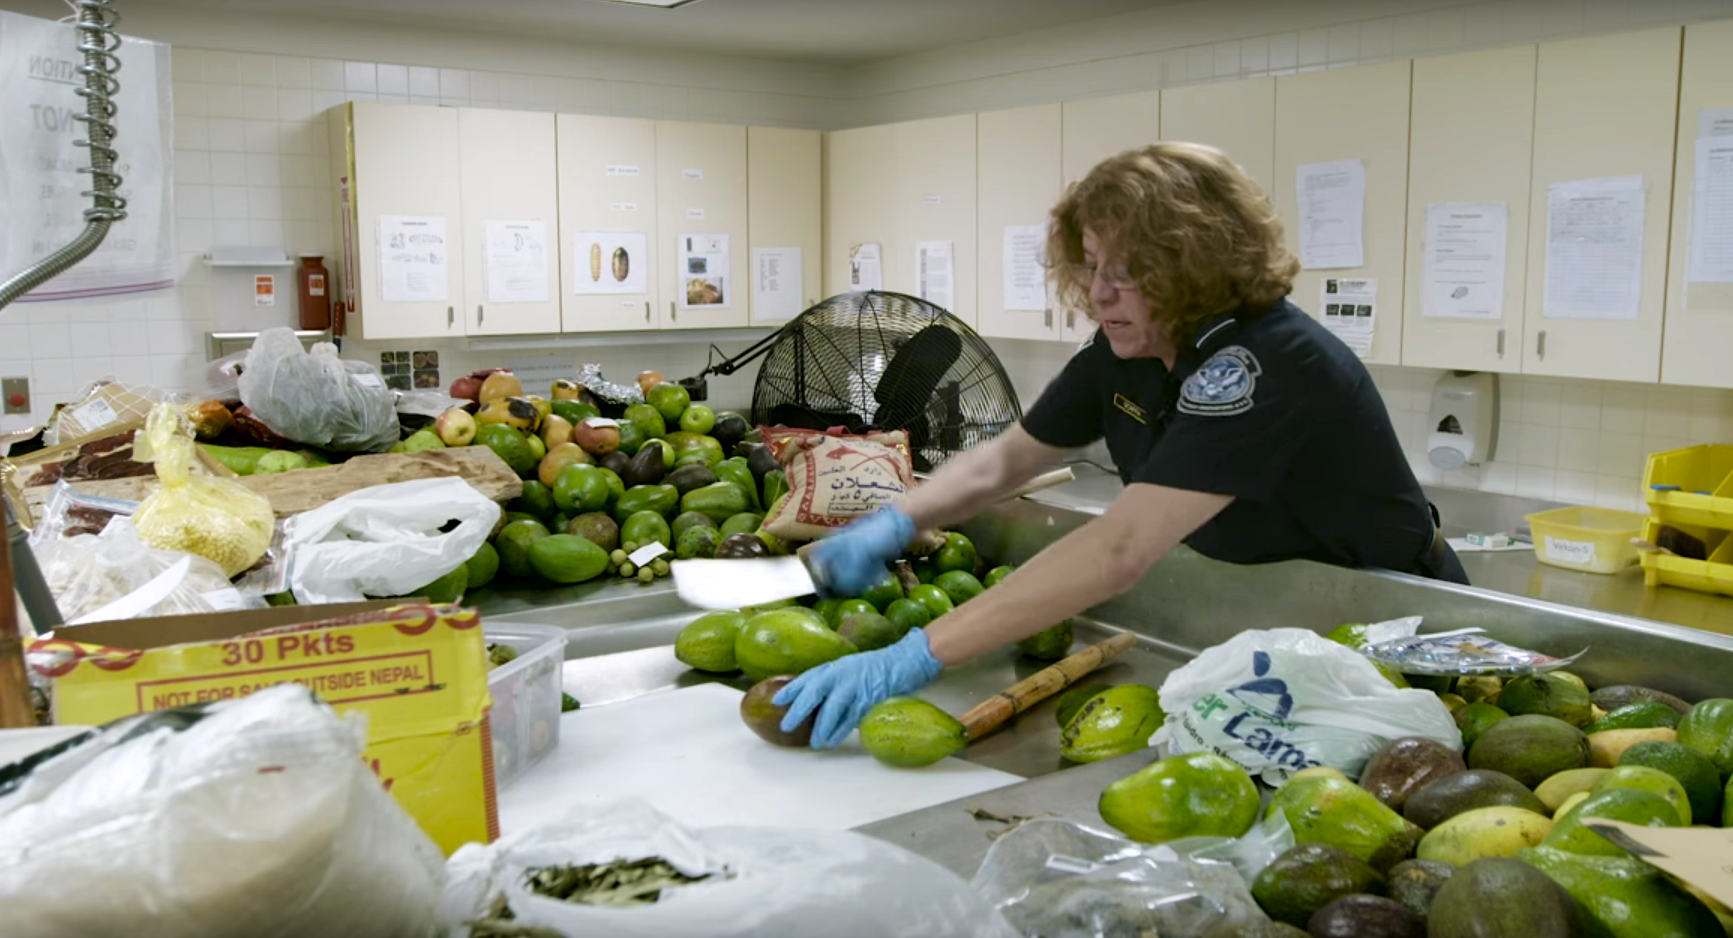 Where Illegal Food Goes to Die (Video)